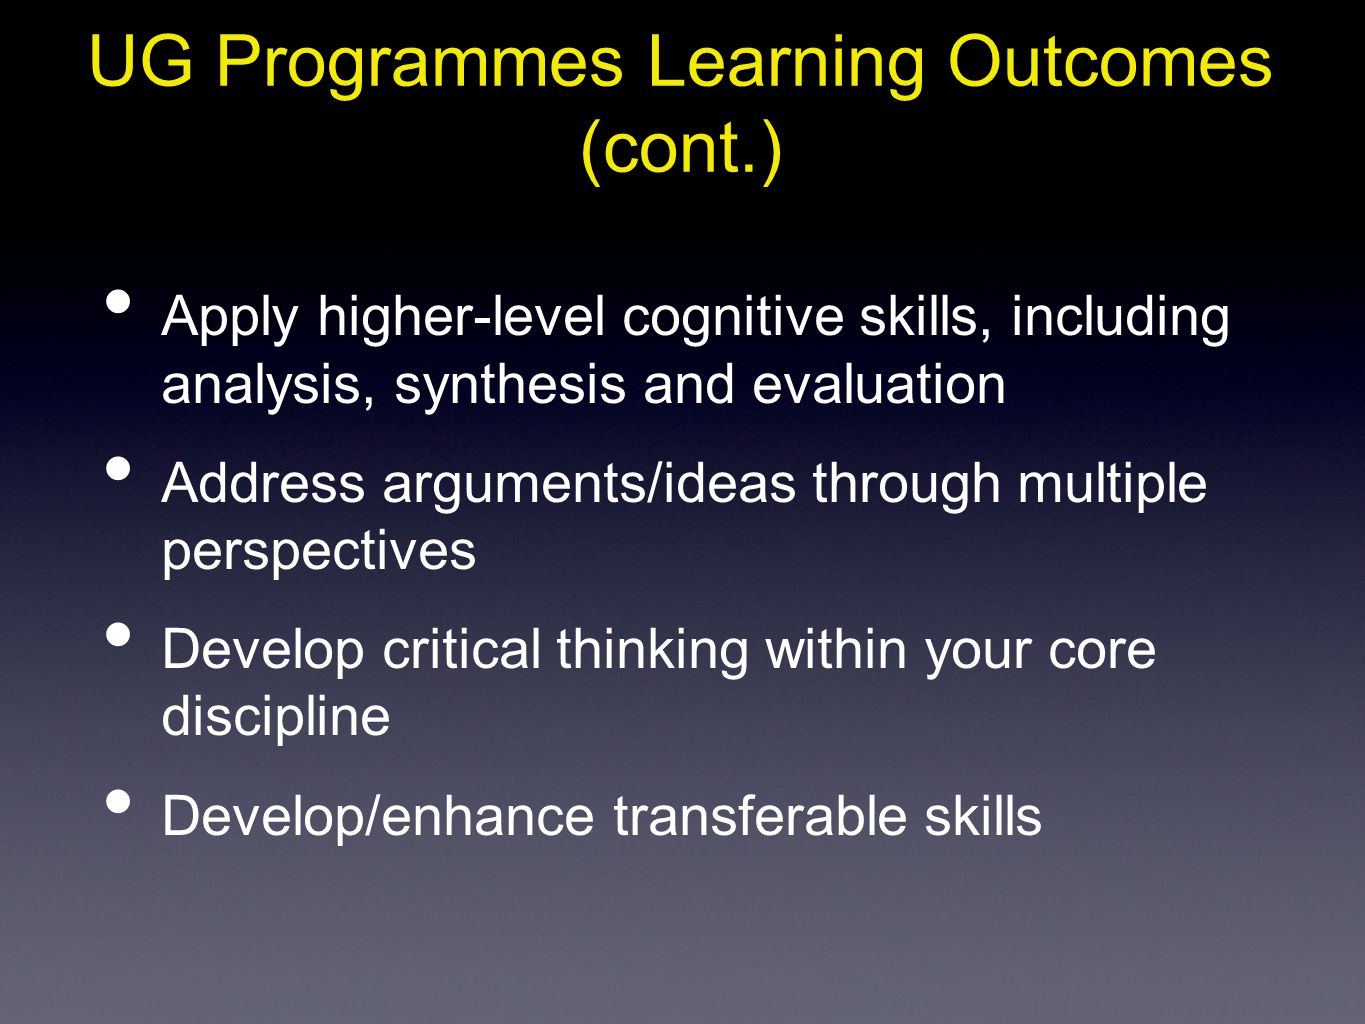 UG Programmes Learning Outcomes (cont.)